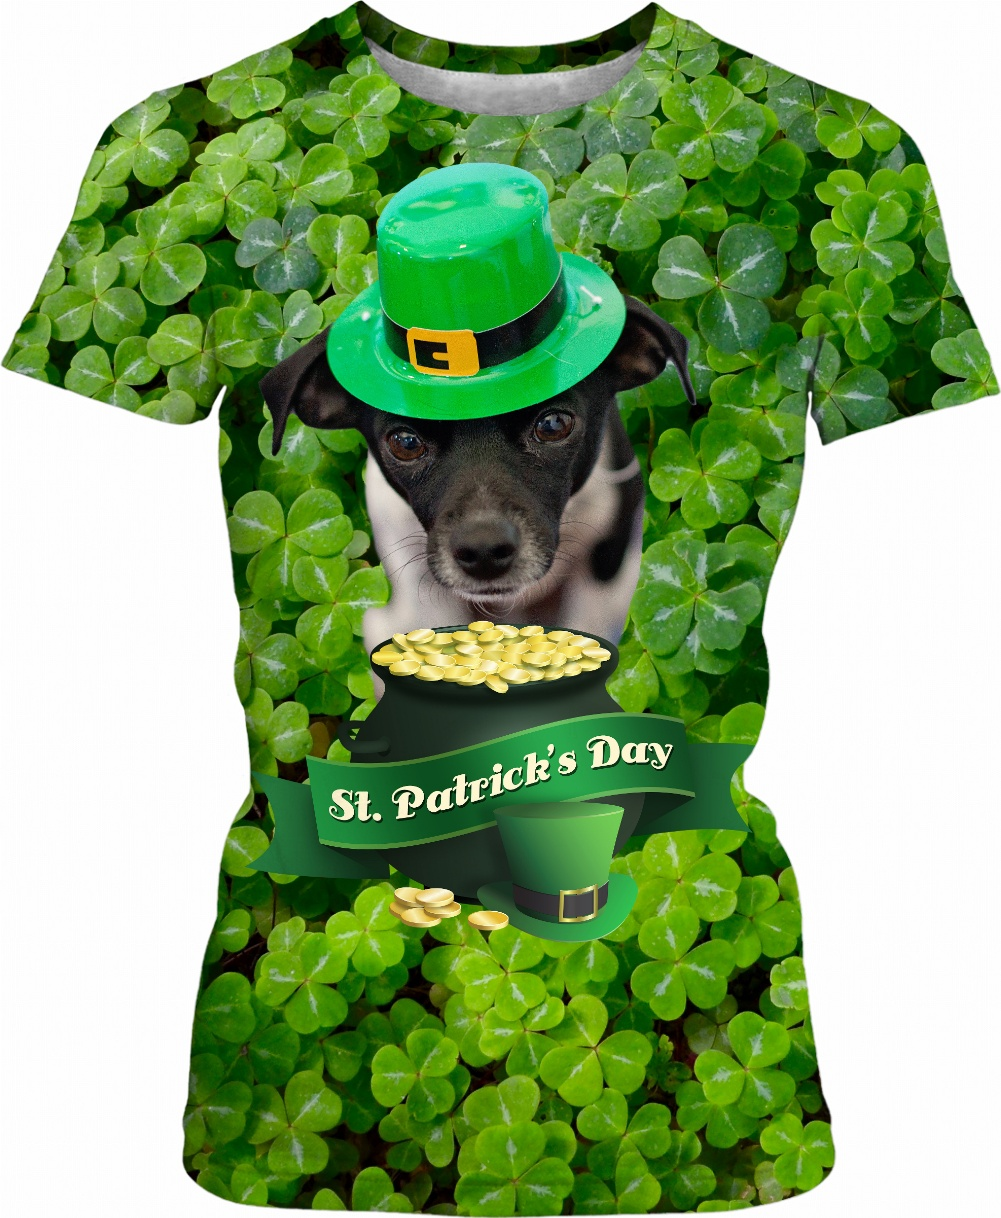 A design that combines a dog lover's niche and a St. holiday style for Patrick's Day